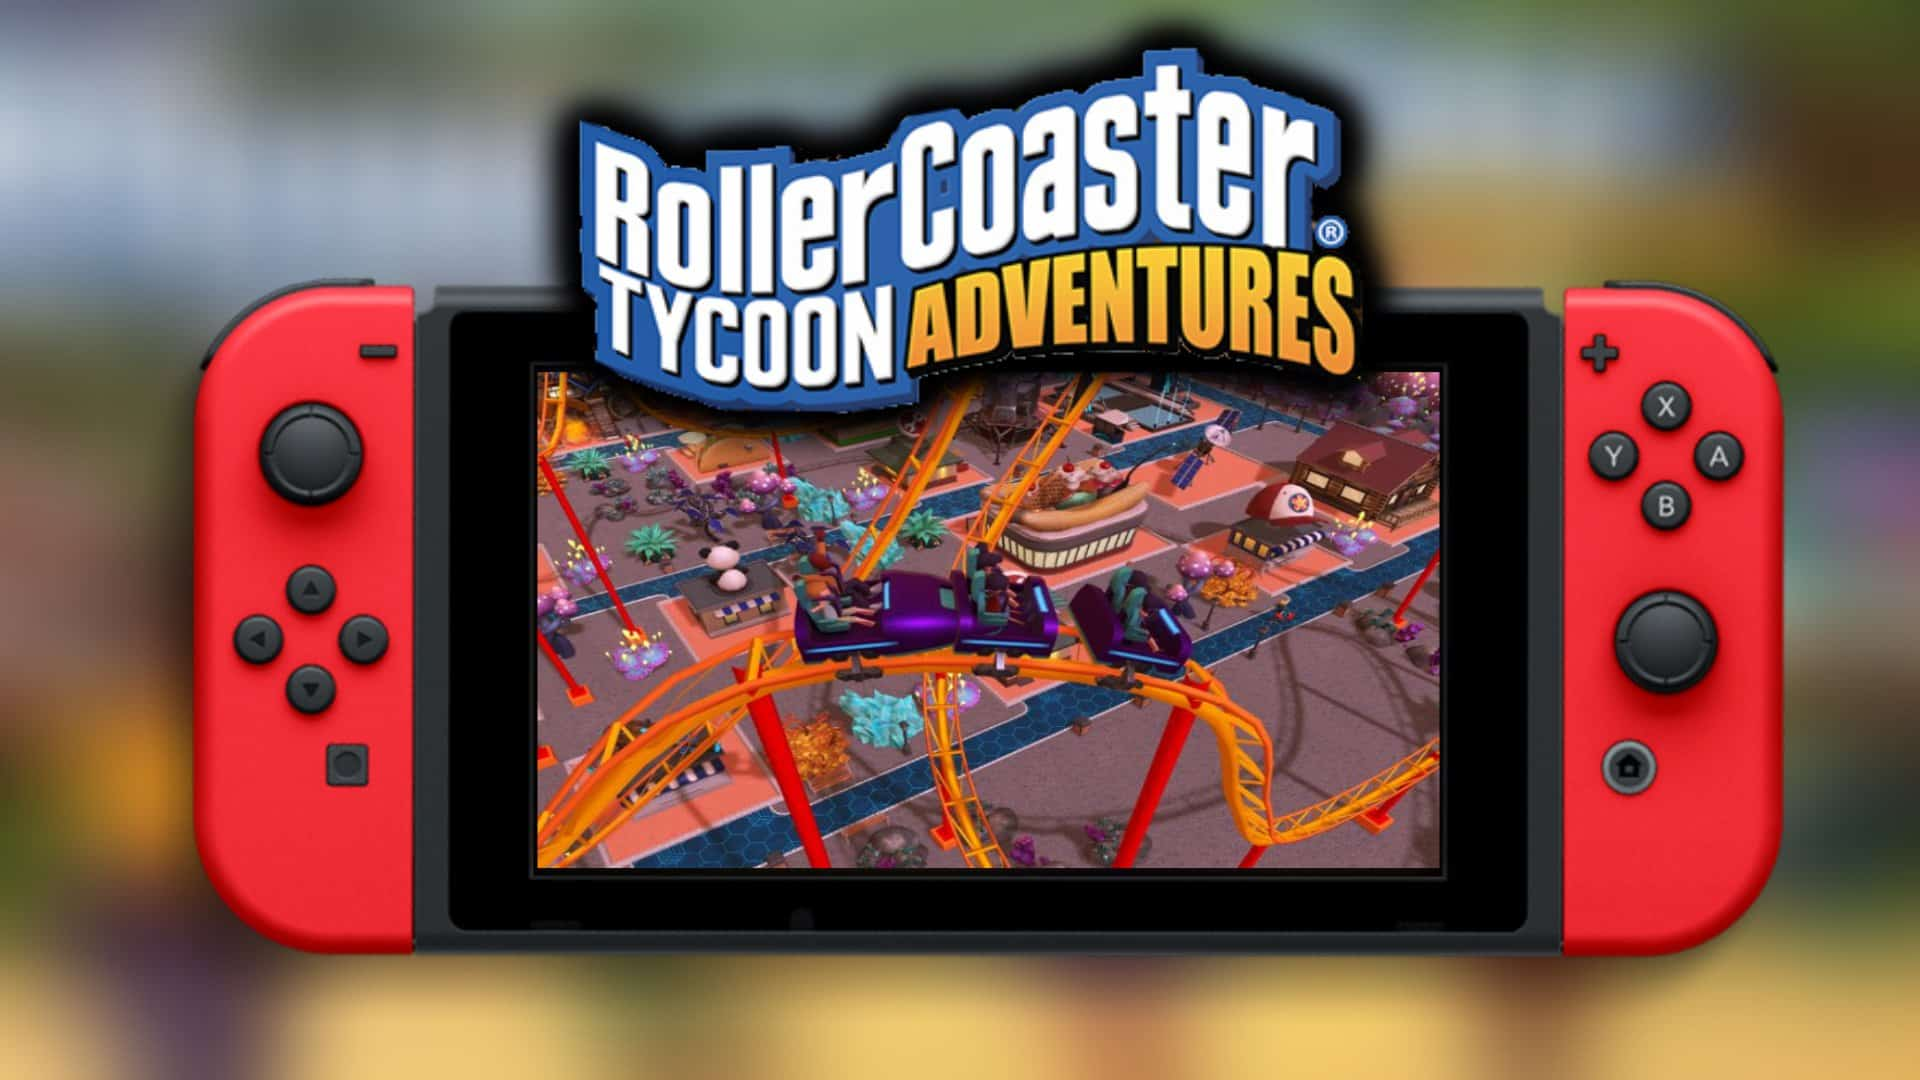 Rollercoaster Tycoon Adventures brings the series to Nintendo Switch